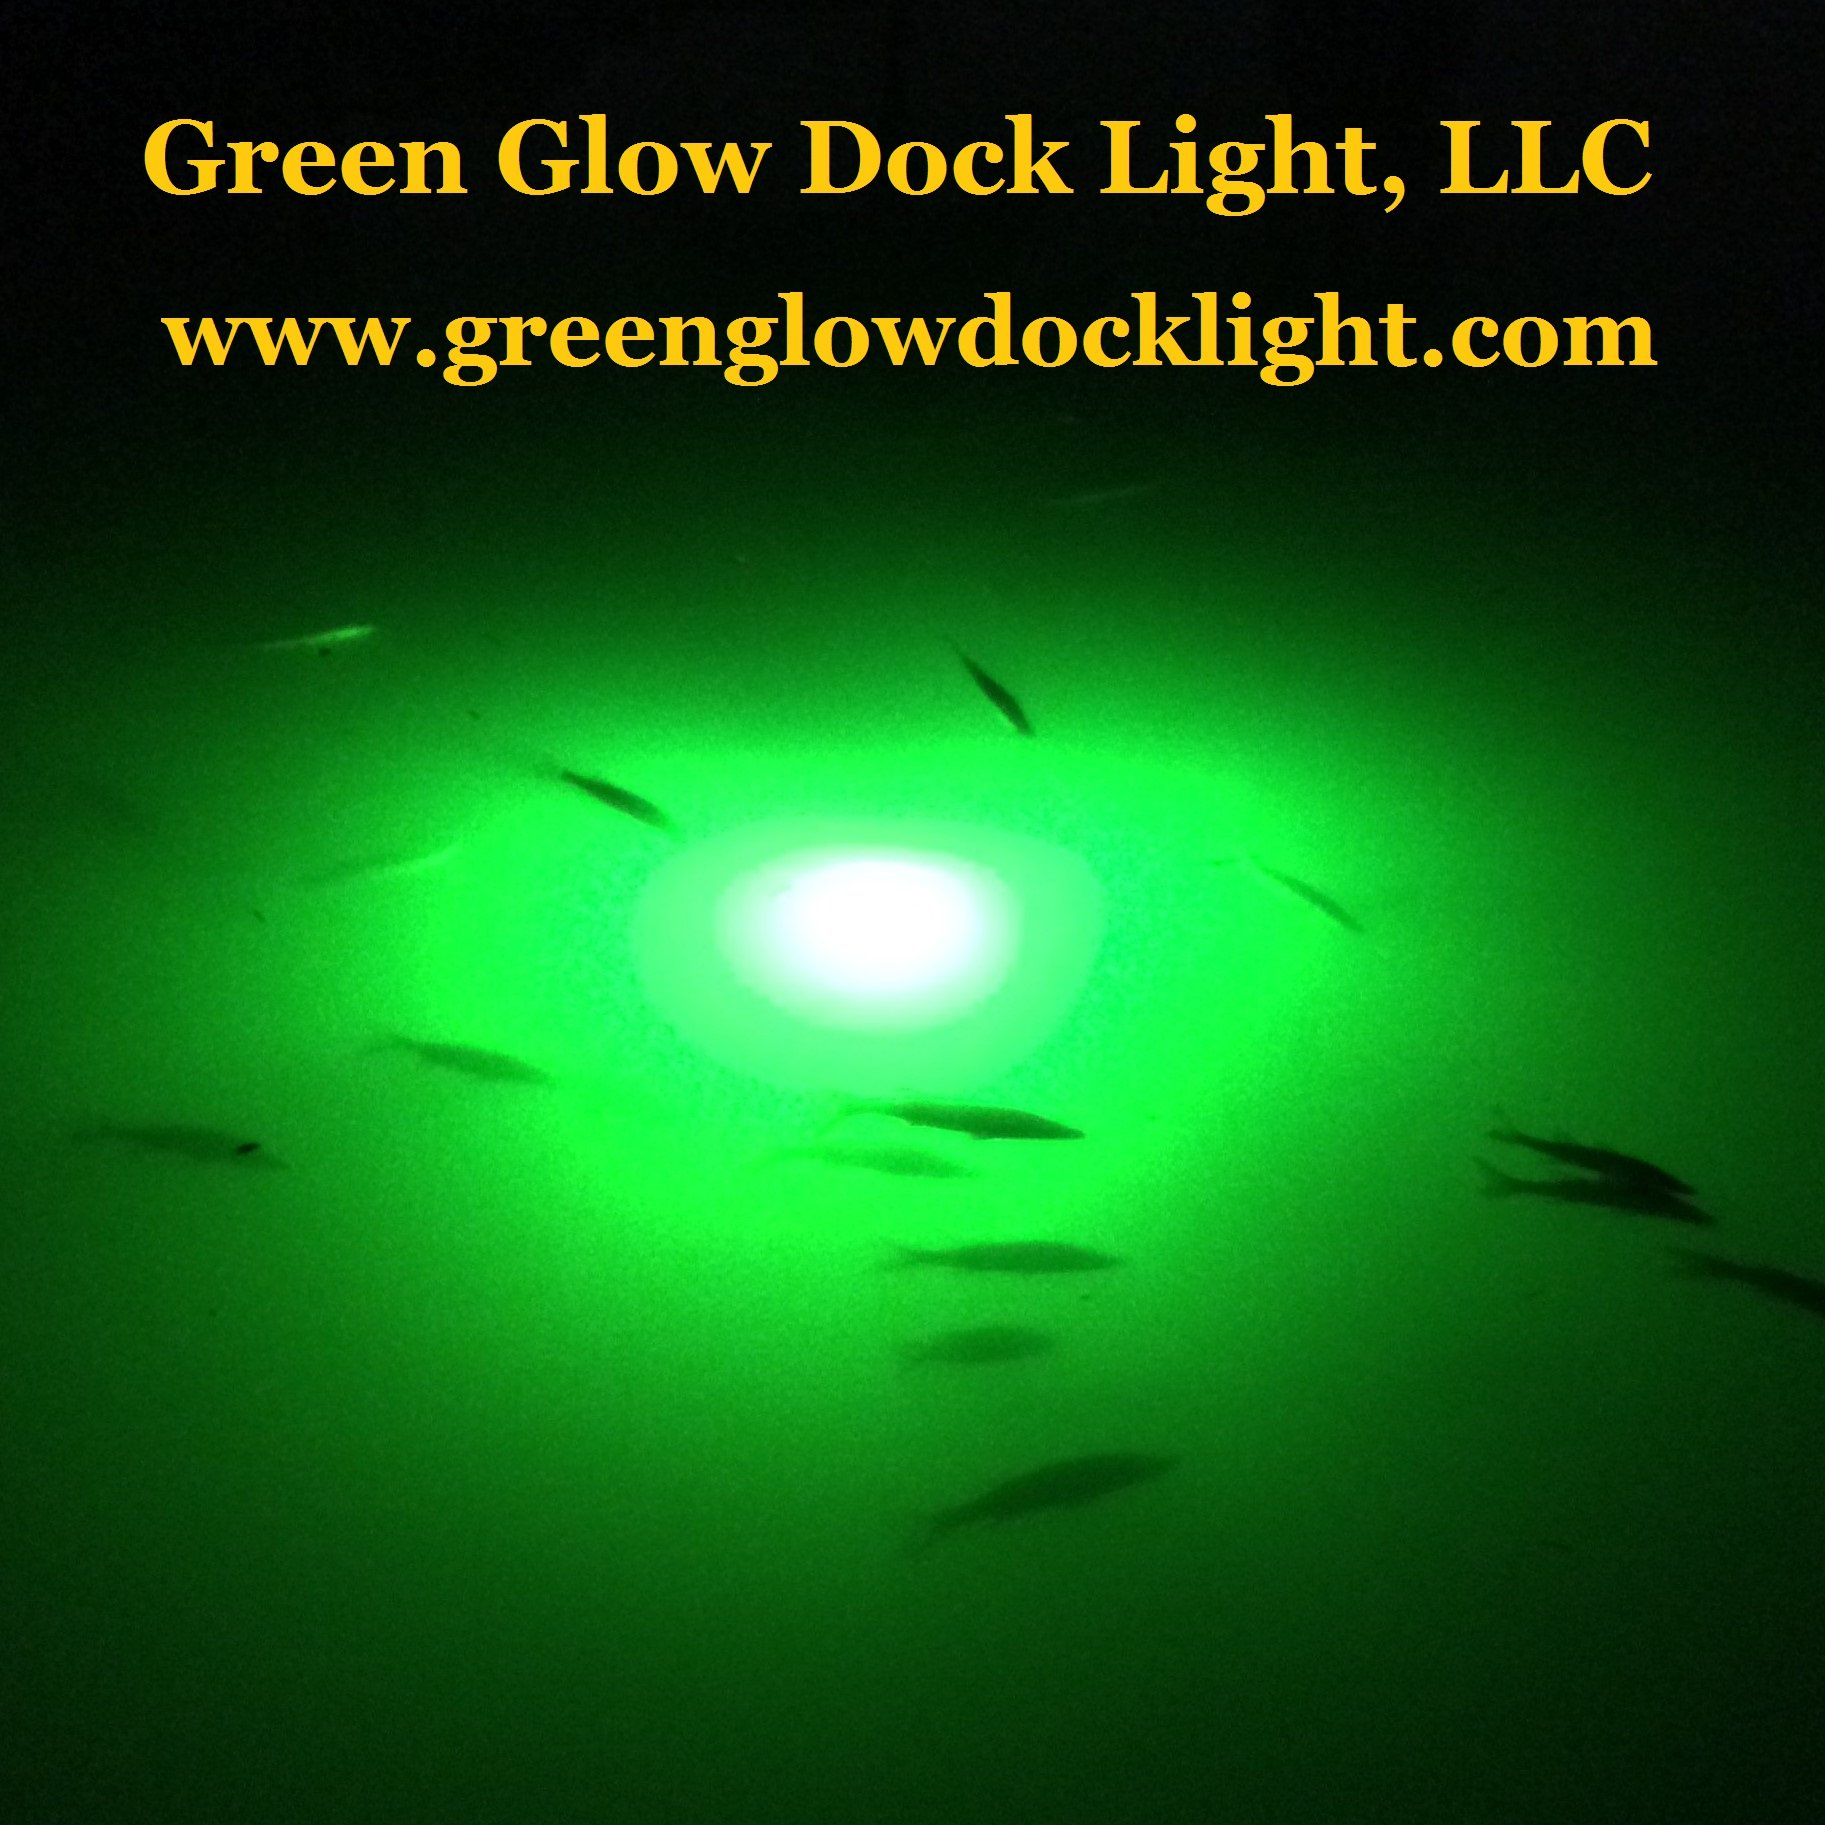 Bright Green Underwater Fishing Lights, Double Lamp Kit with 50' Cords Saltwater or Fresh by Green Glow Dock Light (Image #6)